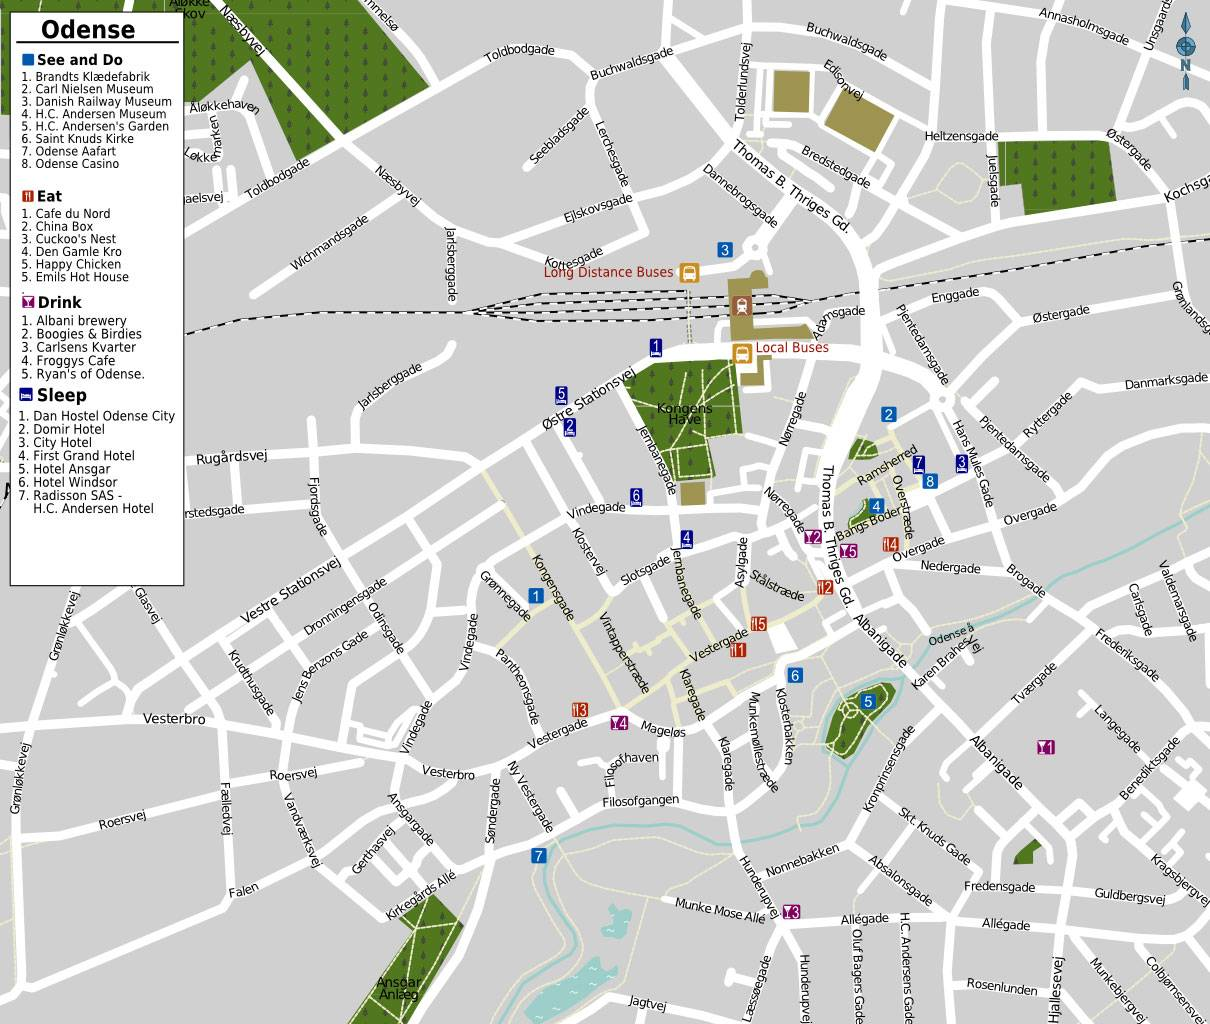 Large Odense Maps for Free Download | High-Resolution and Detailed ...